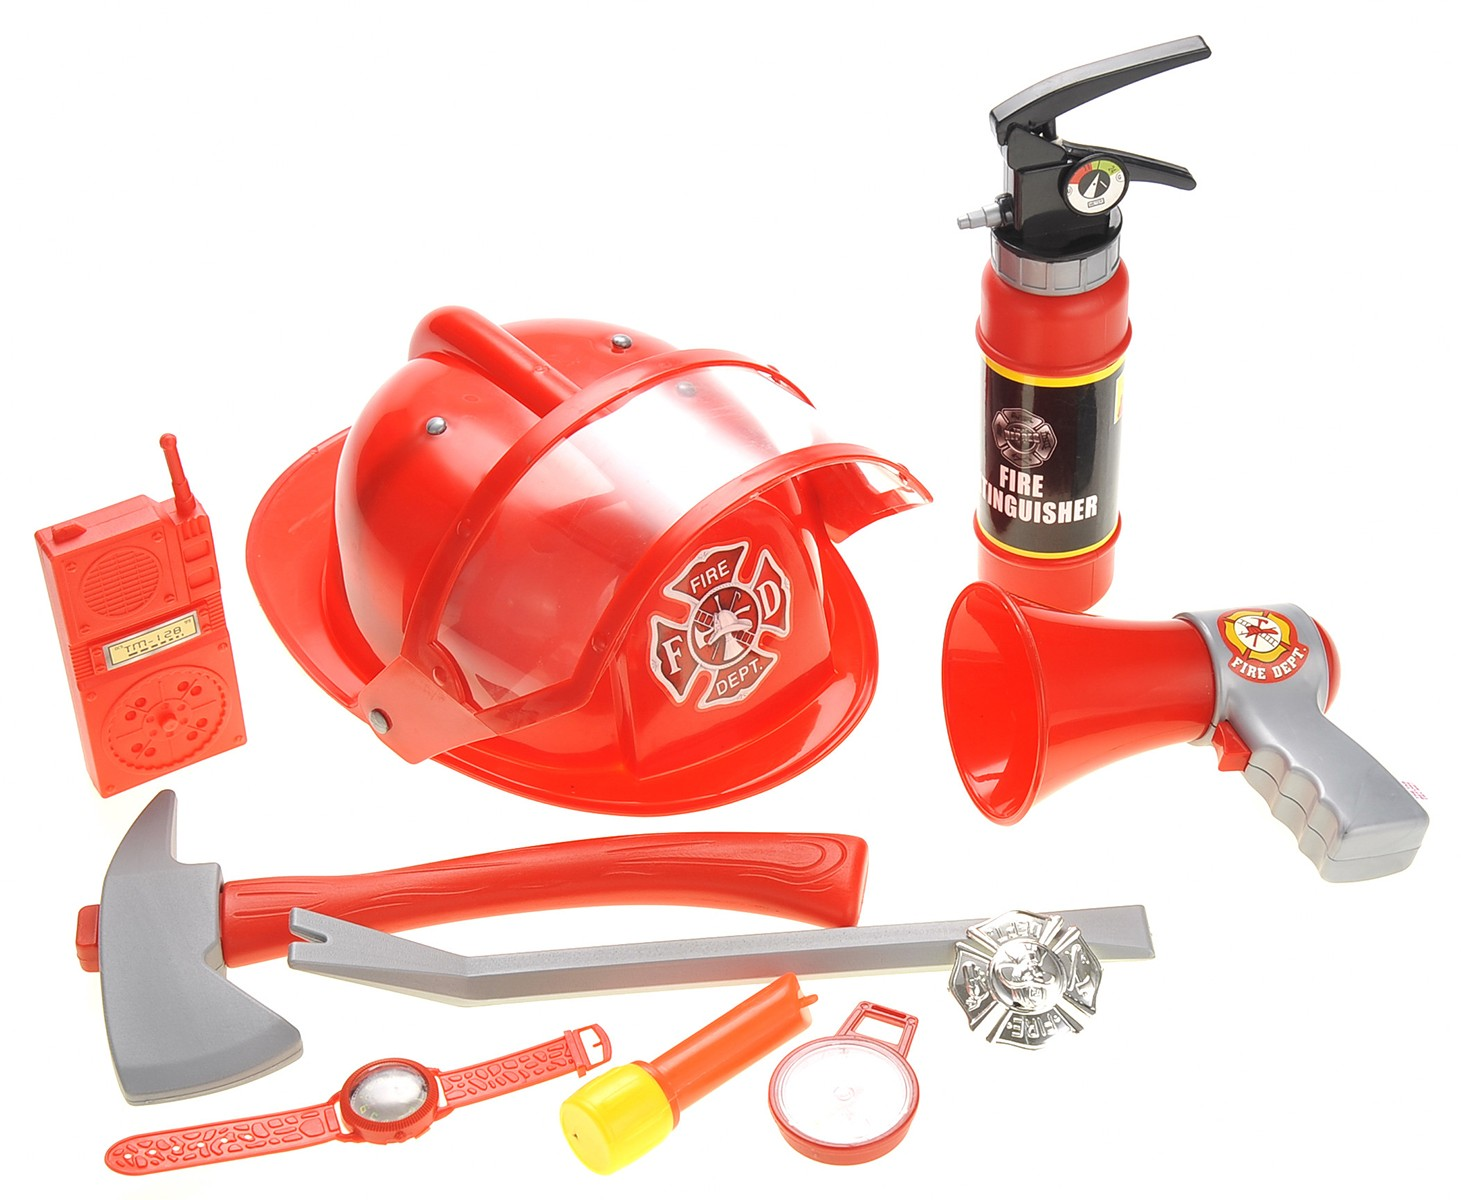 Fireman Gear Play Set for Kids With Helmet And Accessories